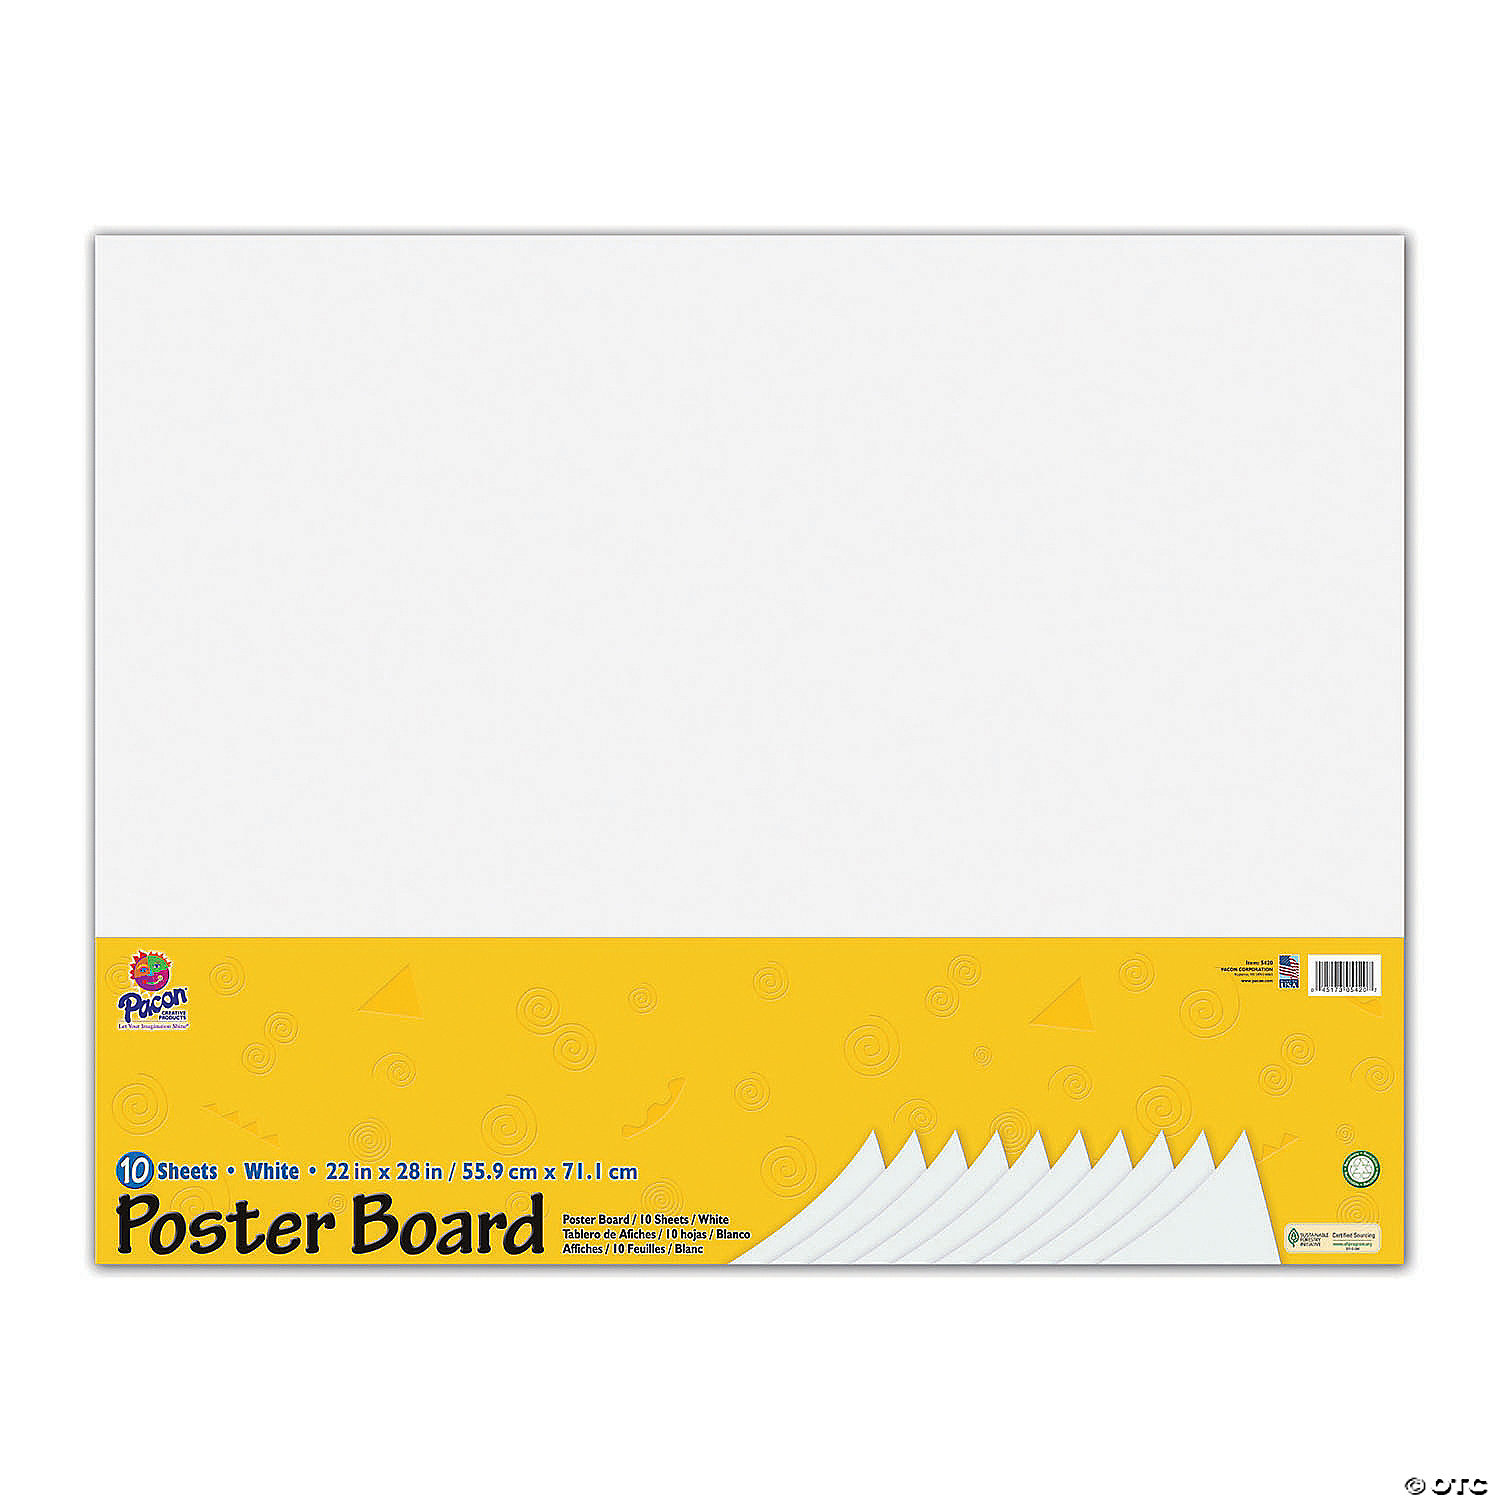 poster board white 22 x 28 10 sheets per pack 3 packs